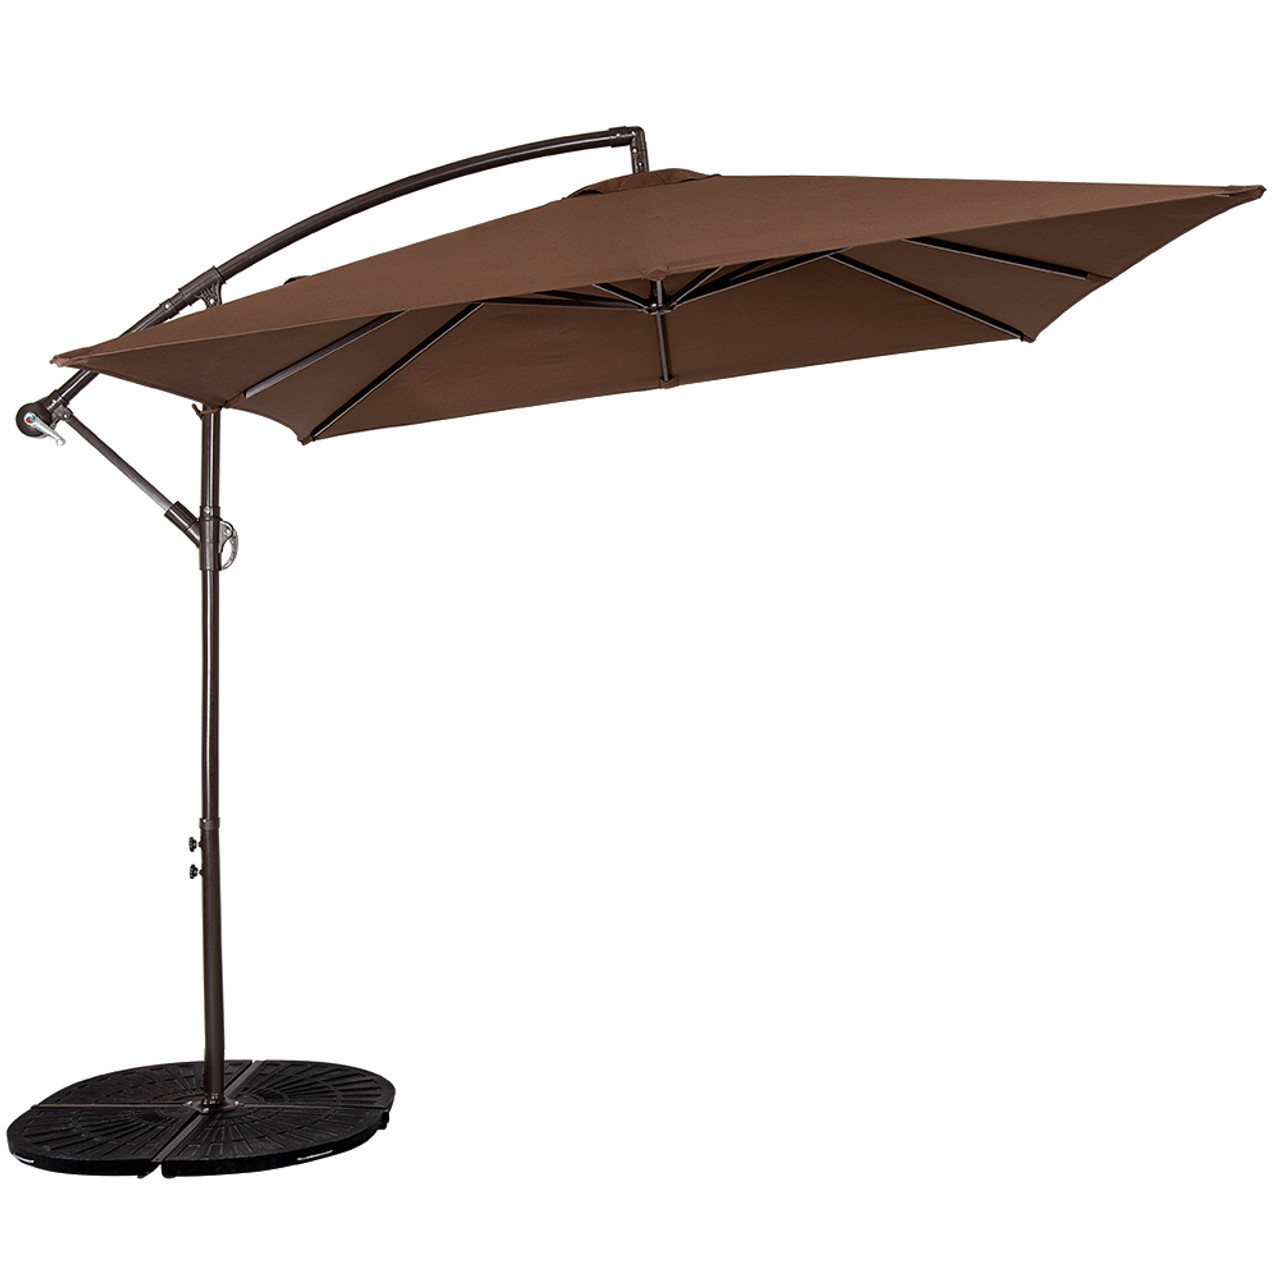 Genial Patio Garden 8.2 X 8.2 FT Square Offset Patio Umbrella With Crank (Coffee)